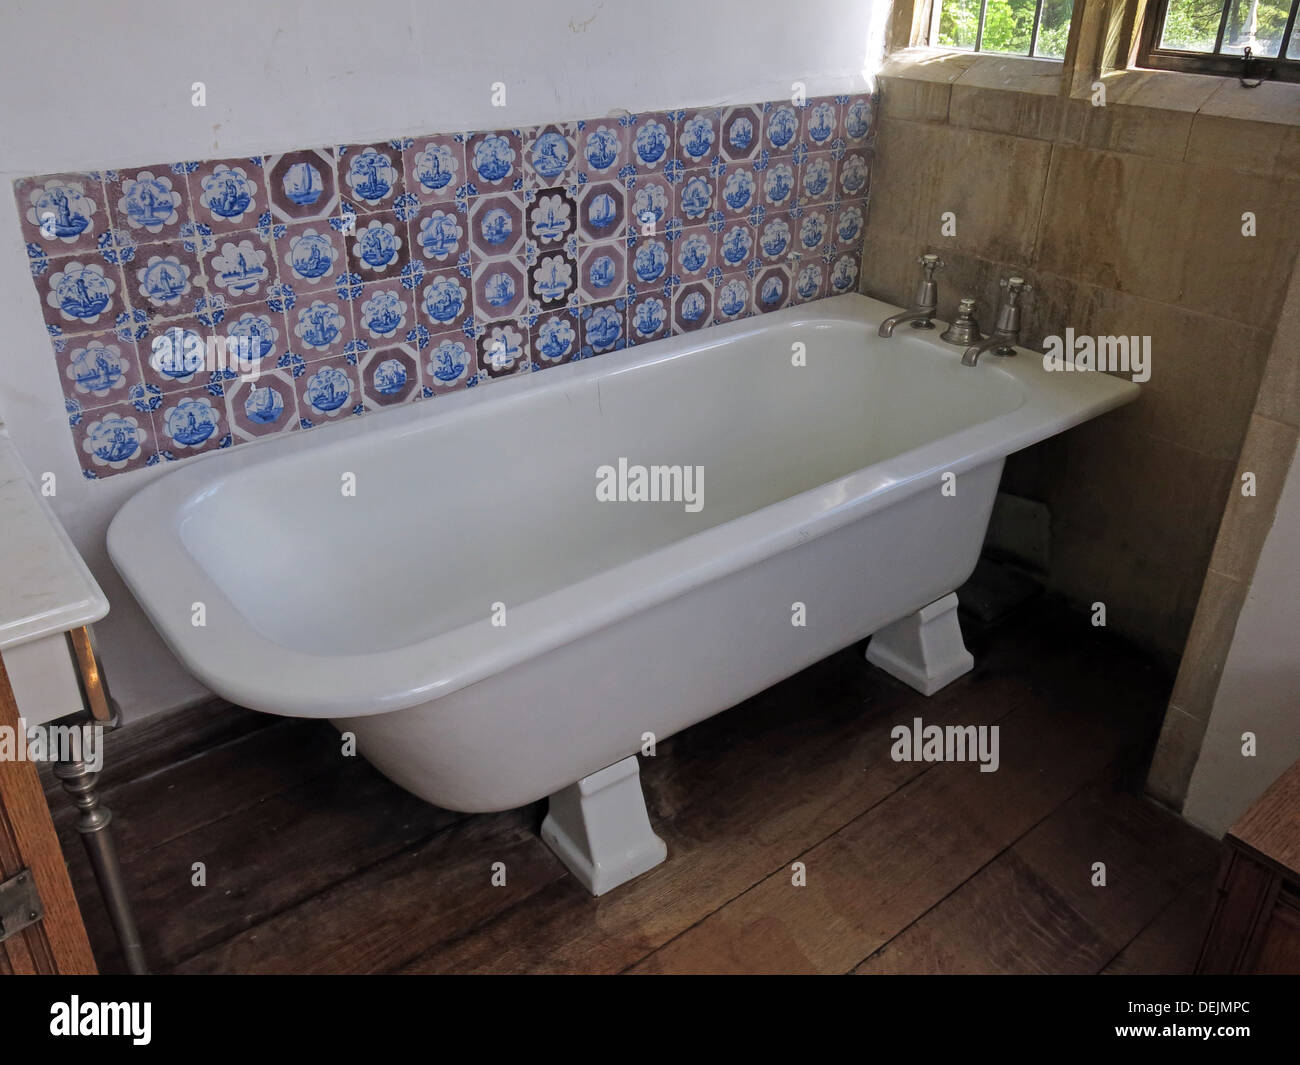 Bath in bathroom at Barrington Court, Ilminster, Somerset , UK TA19 0NQ - Stock Image